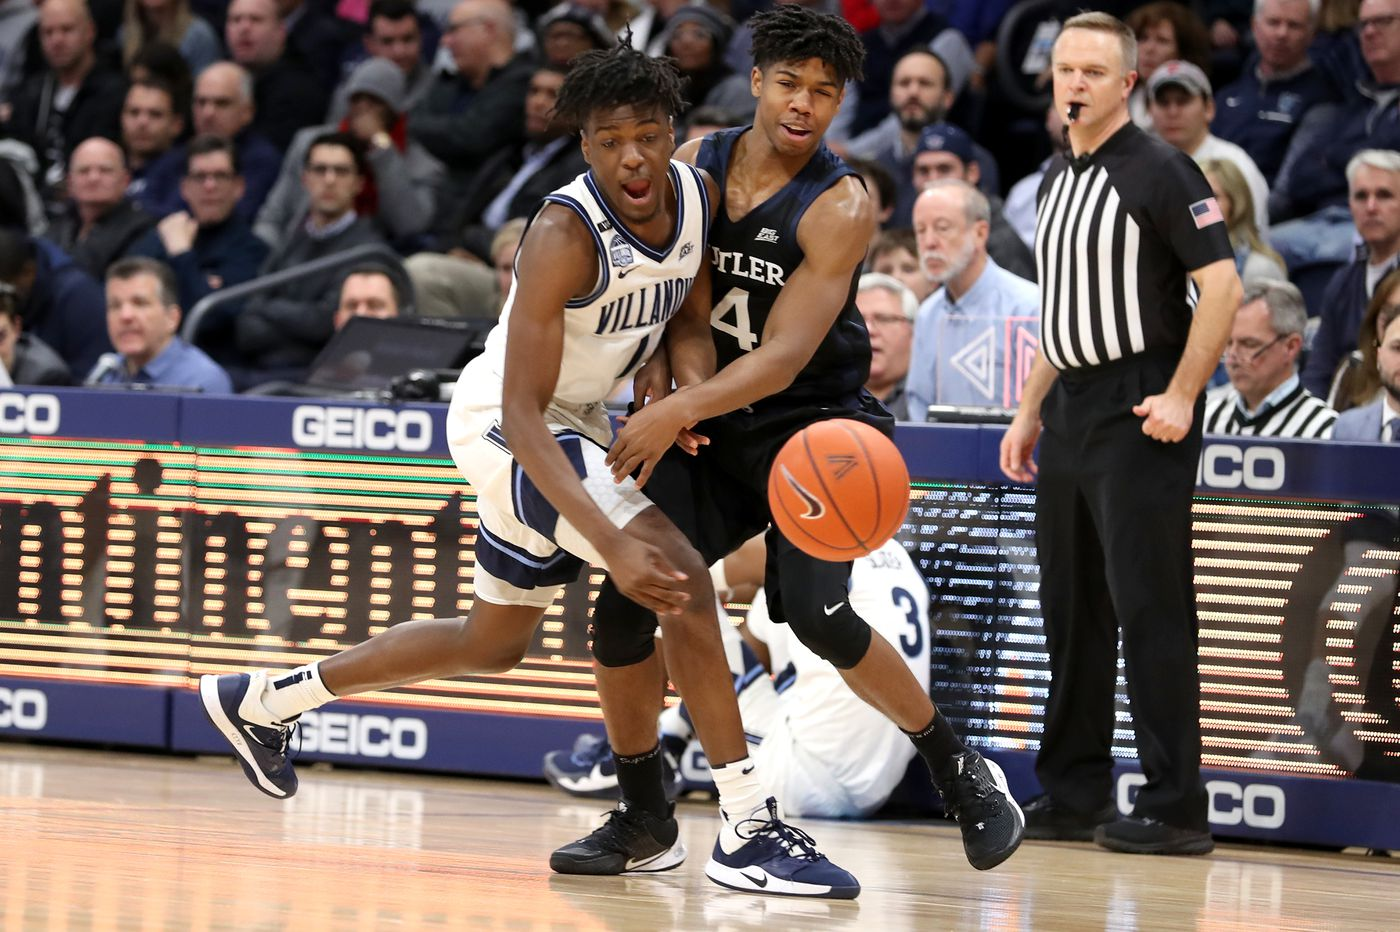 No. 9 Villanova 76, No. 13 Butler 61: Stats, highlights and reaction from the Wildcats' Big East victory